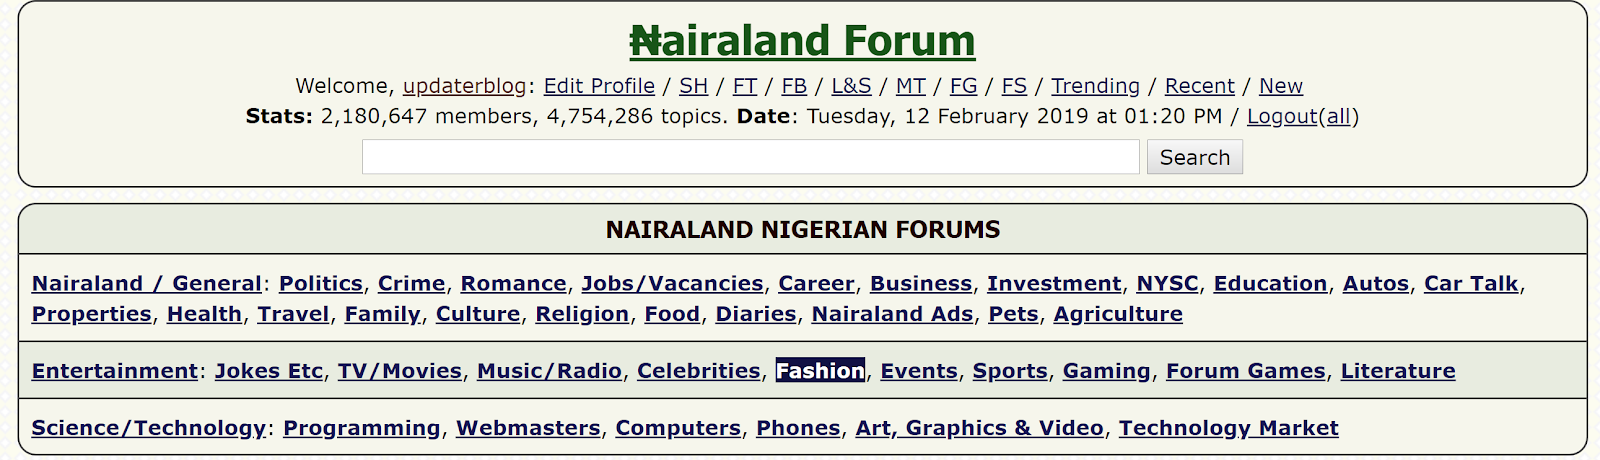 Post Articles and Links on Nairaland Forum